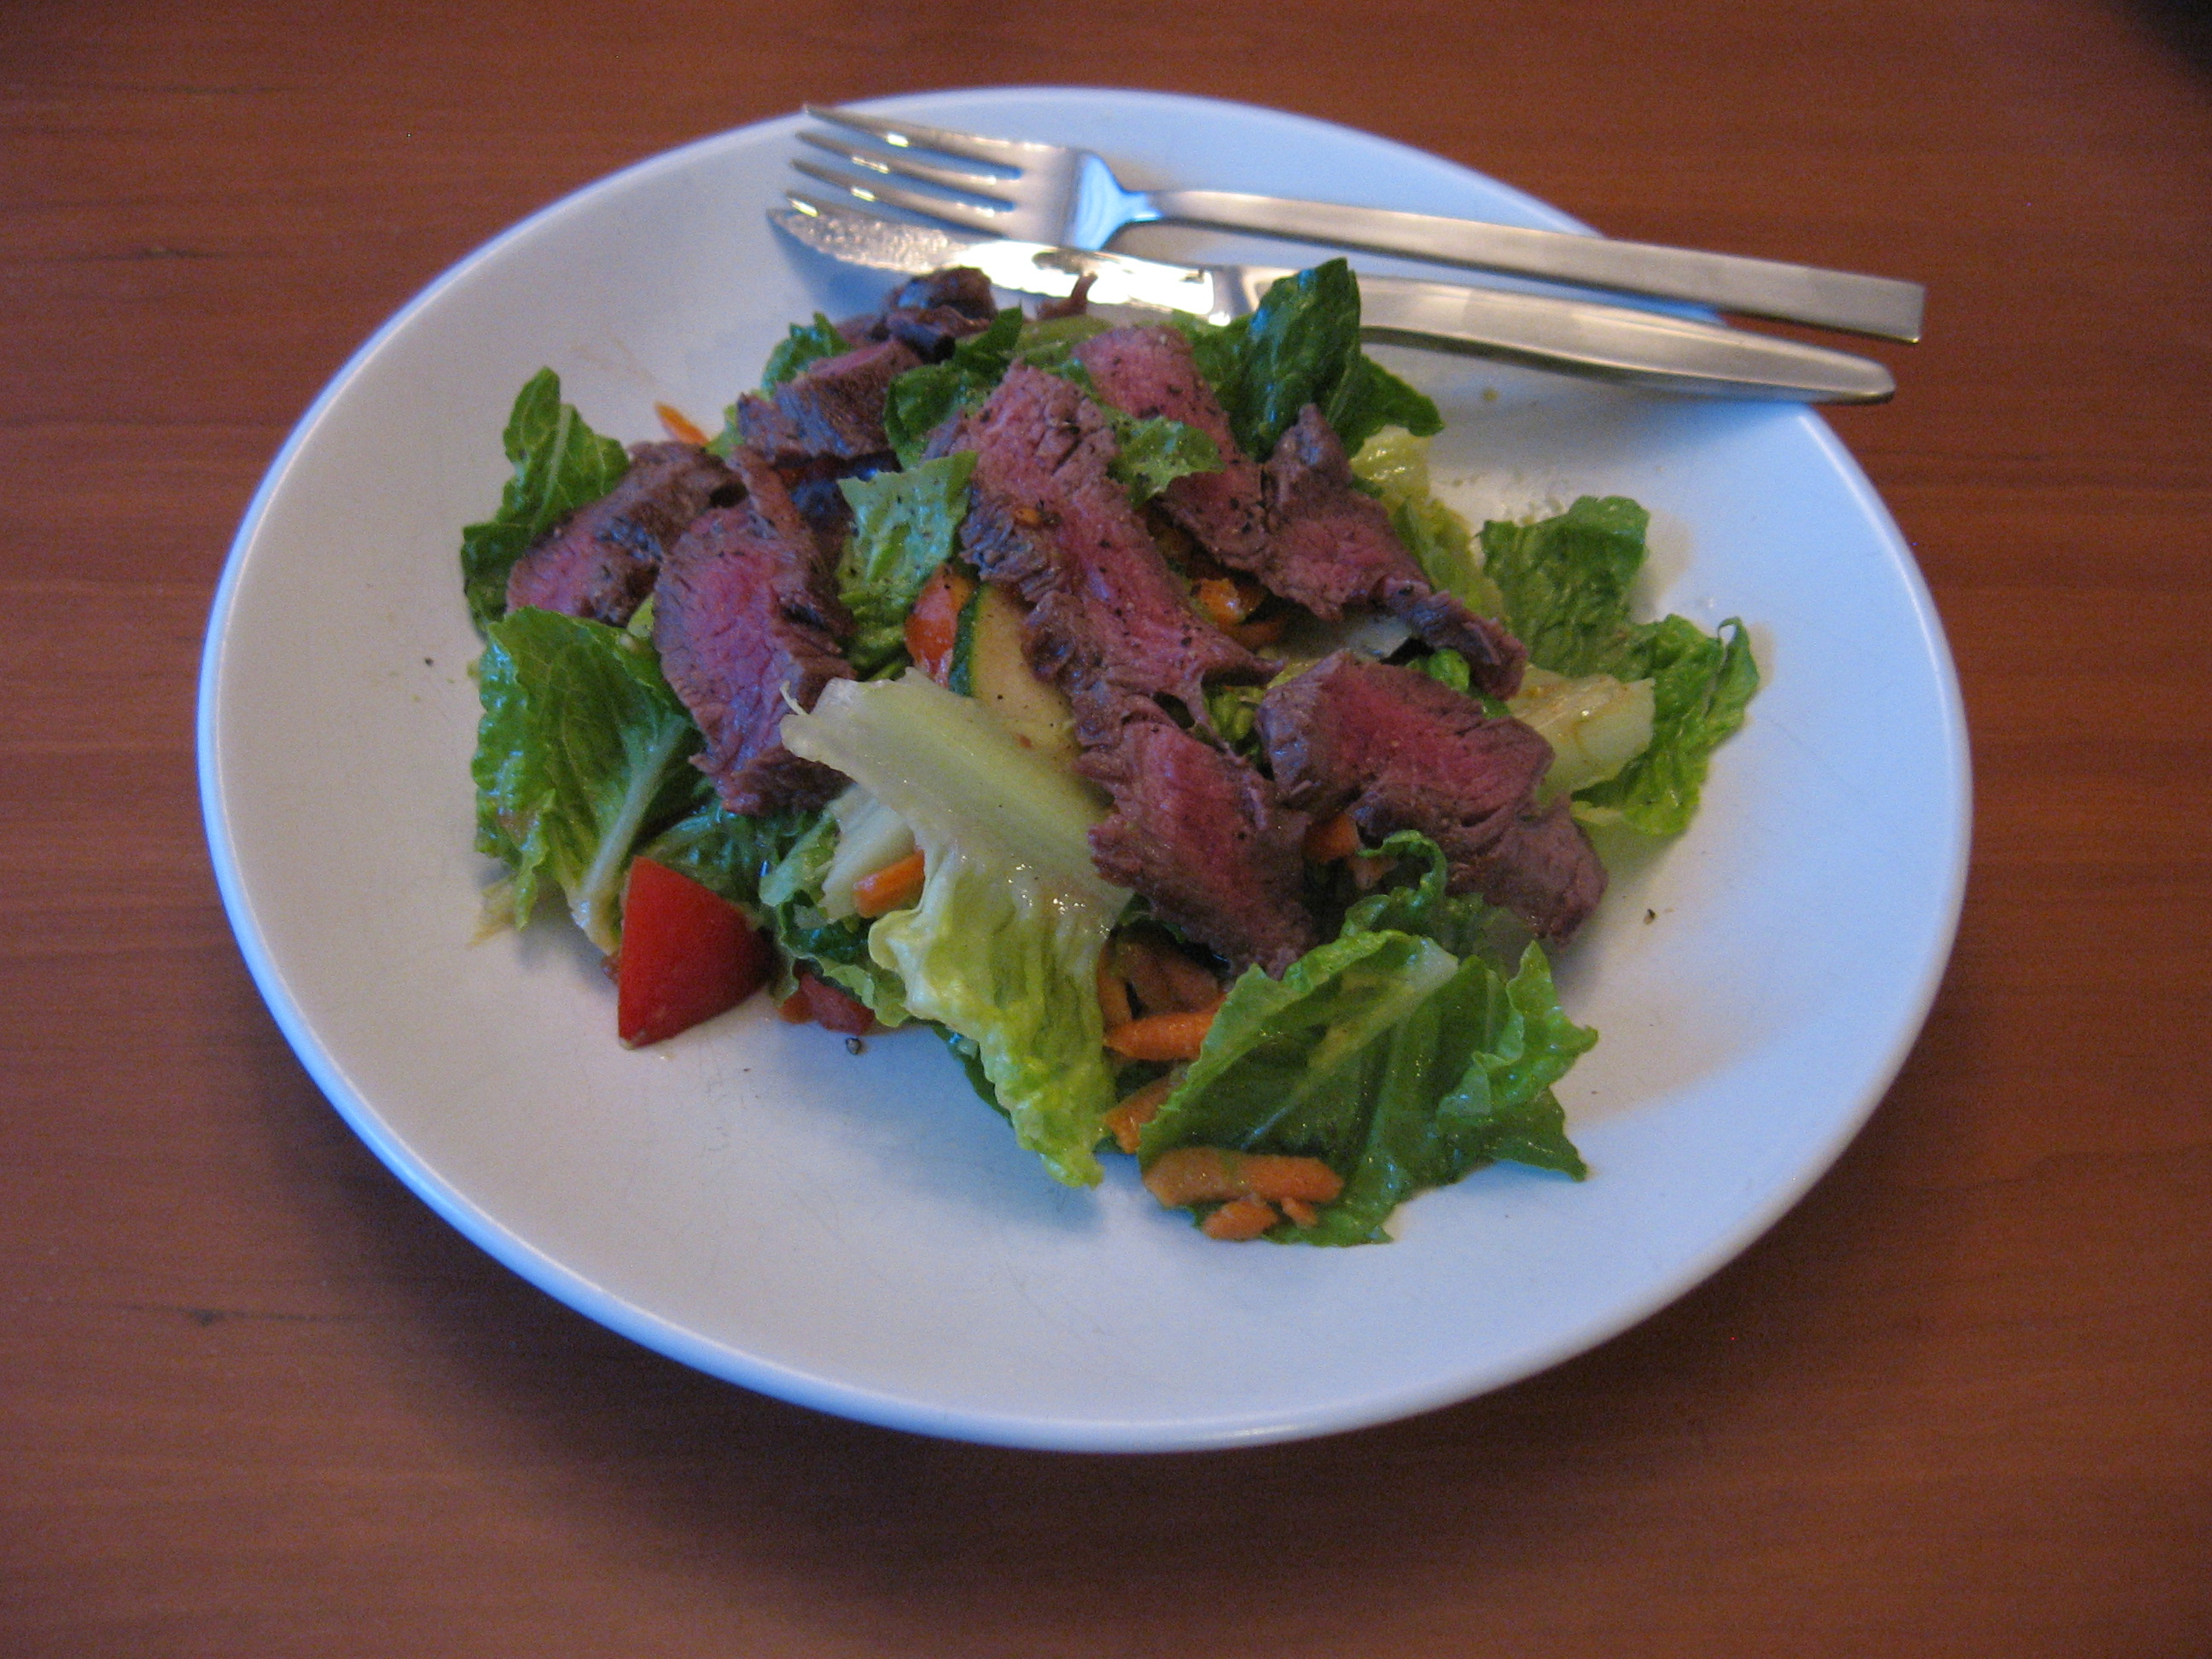 Warm Steak Salad with Red Wine Vinaigrette